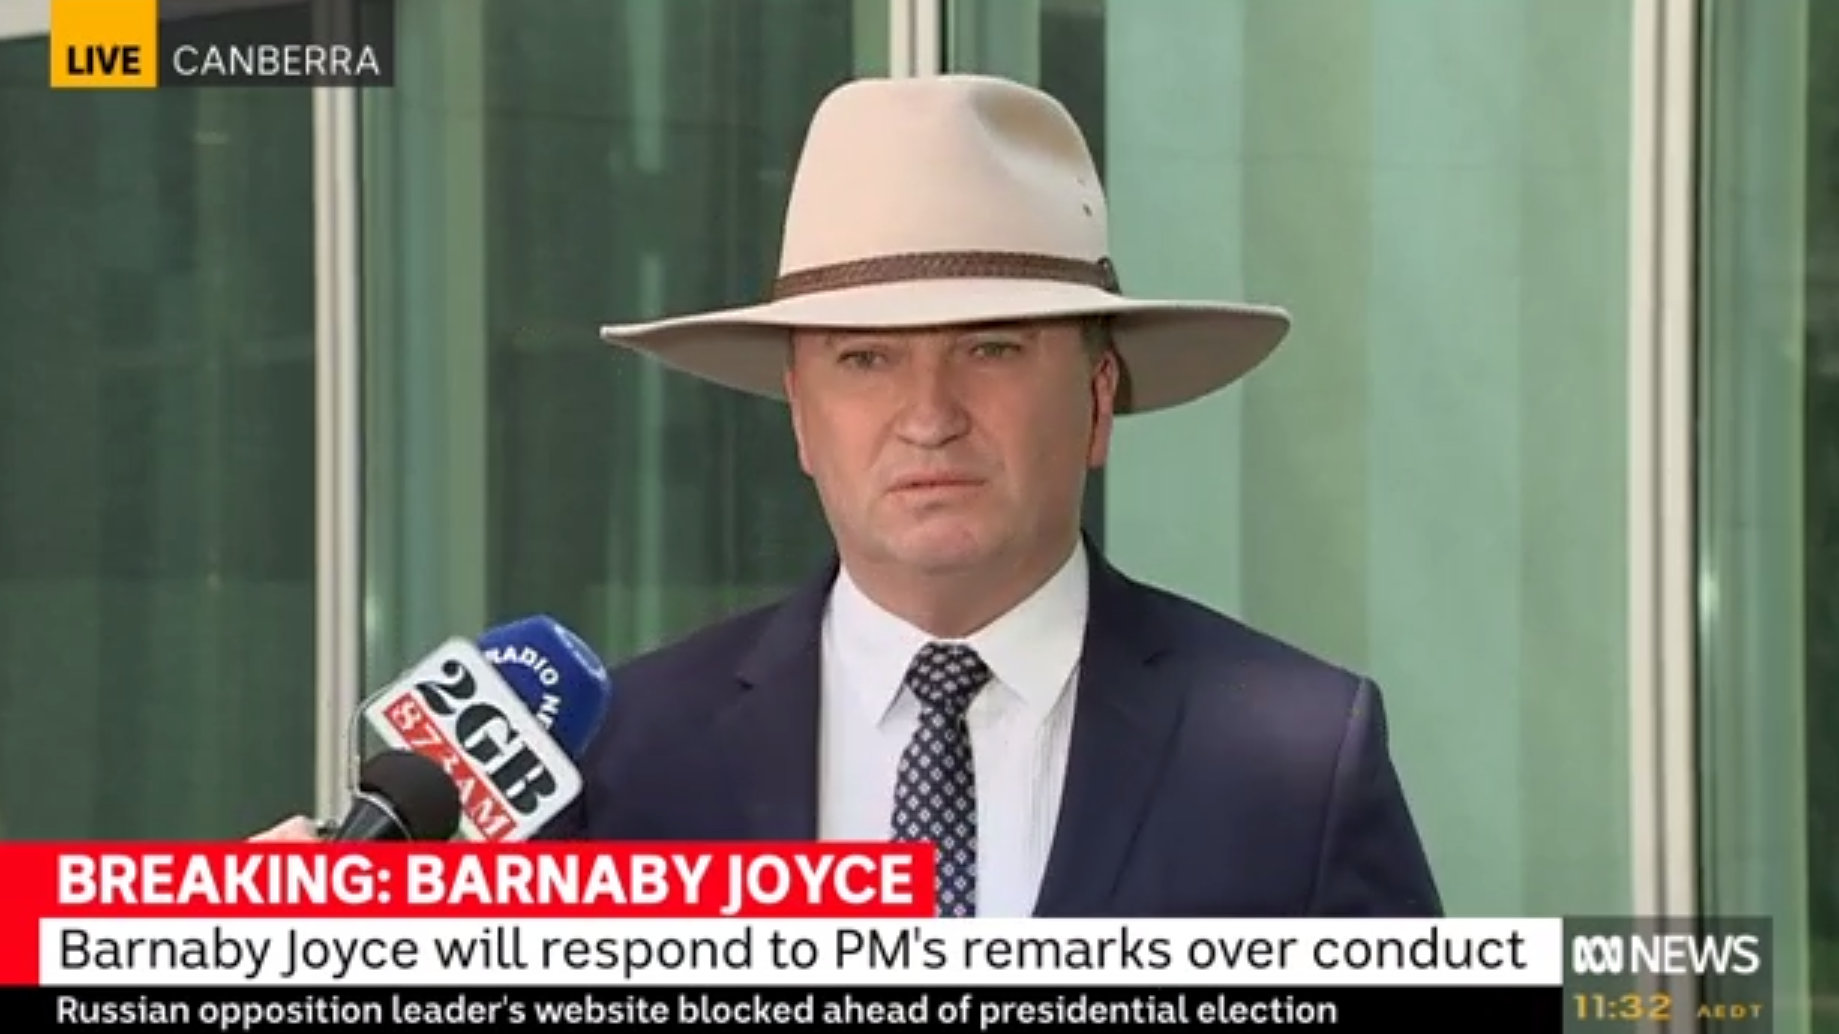 Barnaby Joyce's public scolding from Malcolm Turnbull exposes uncomfortable rift